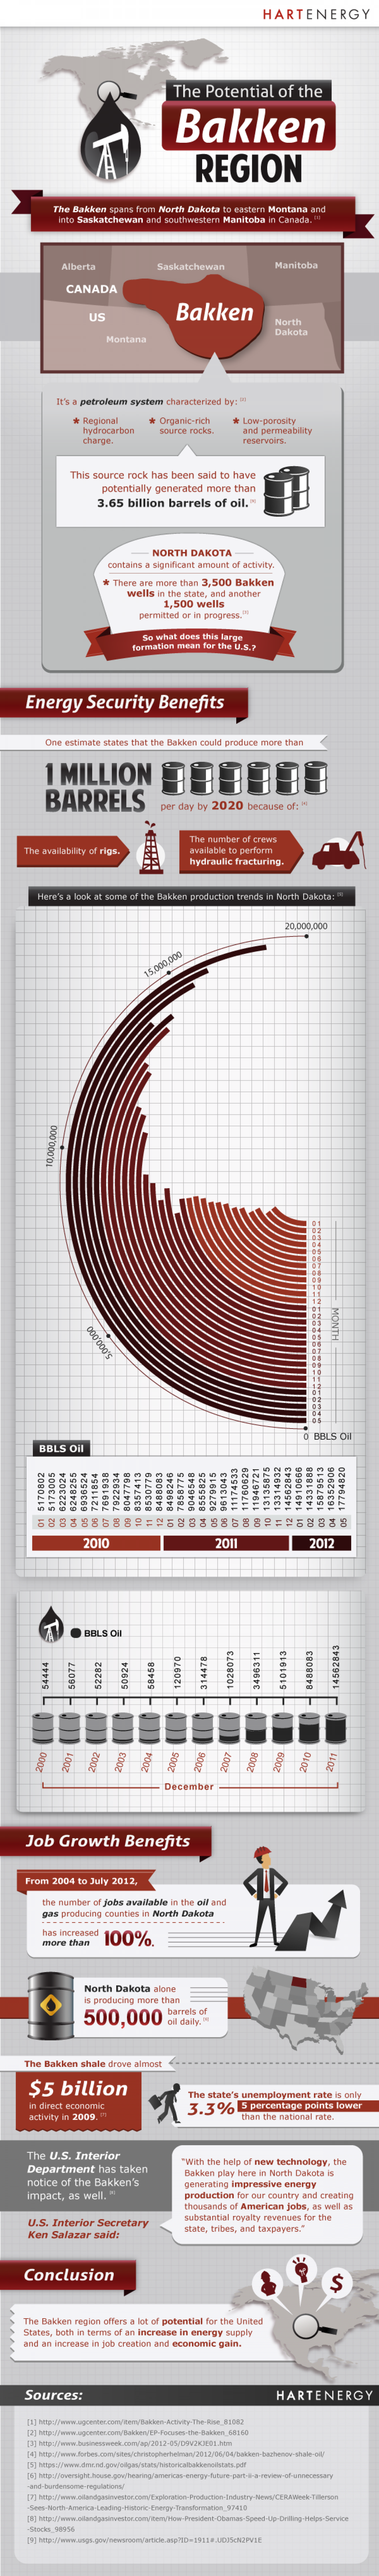 The Potential of the Bakken Region Infographic